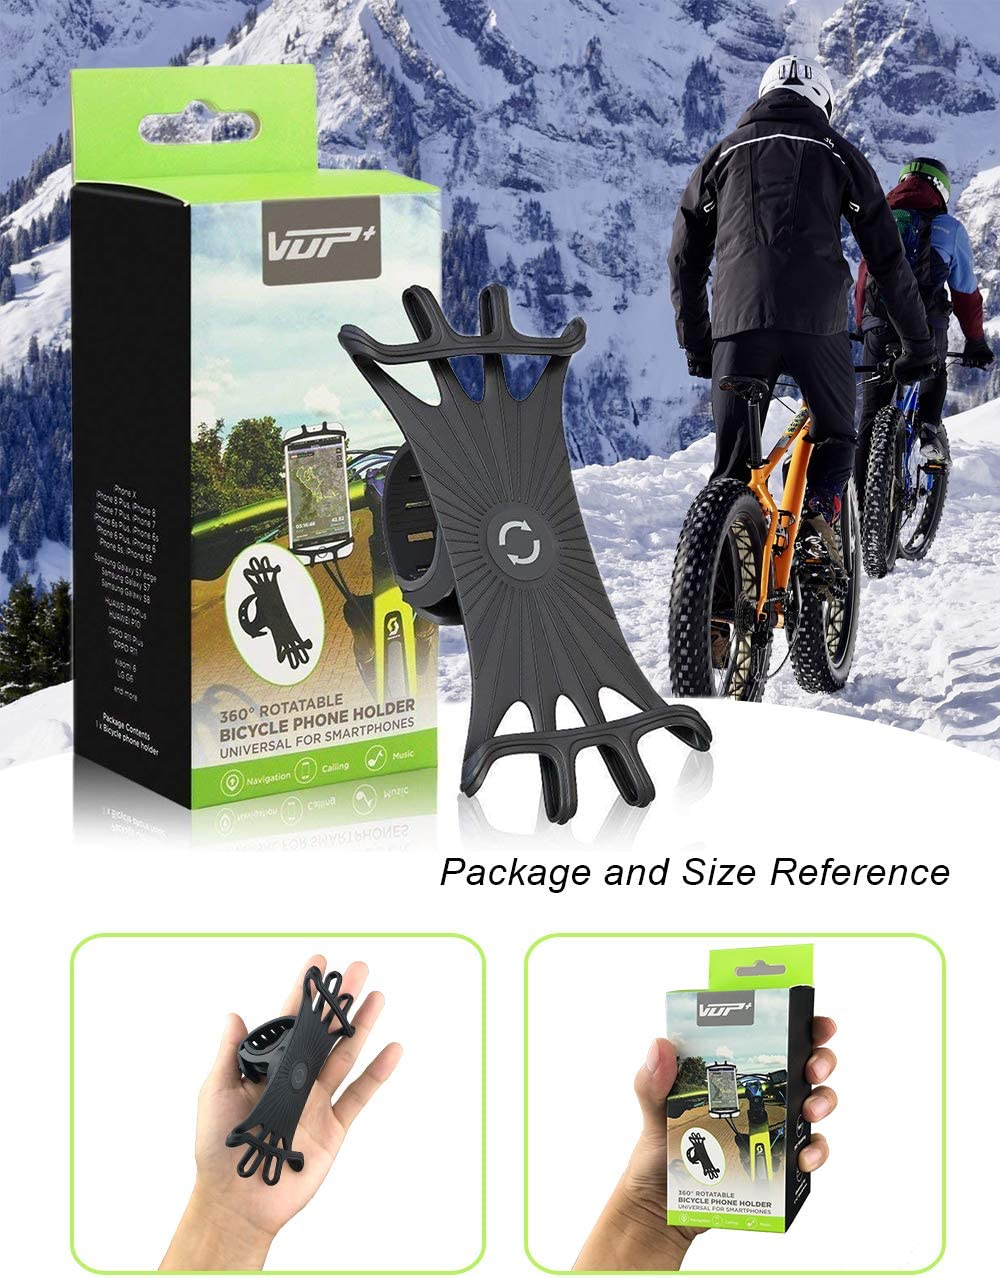 Shopping Cart Phone Holder Compatible with iPhone Samsung and Other Smartphones with Screen Size from 4 inch to 5.8 inch. YAPITO Motorcycle Phone Mount-Bike Phone Holder